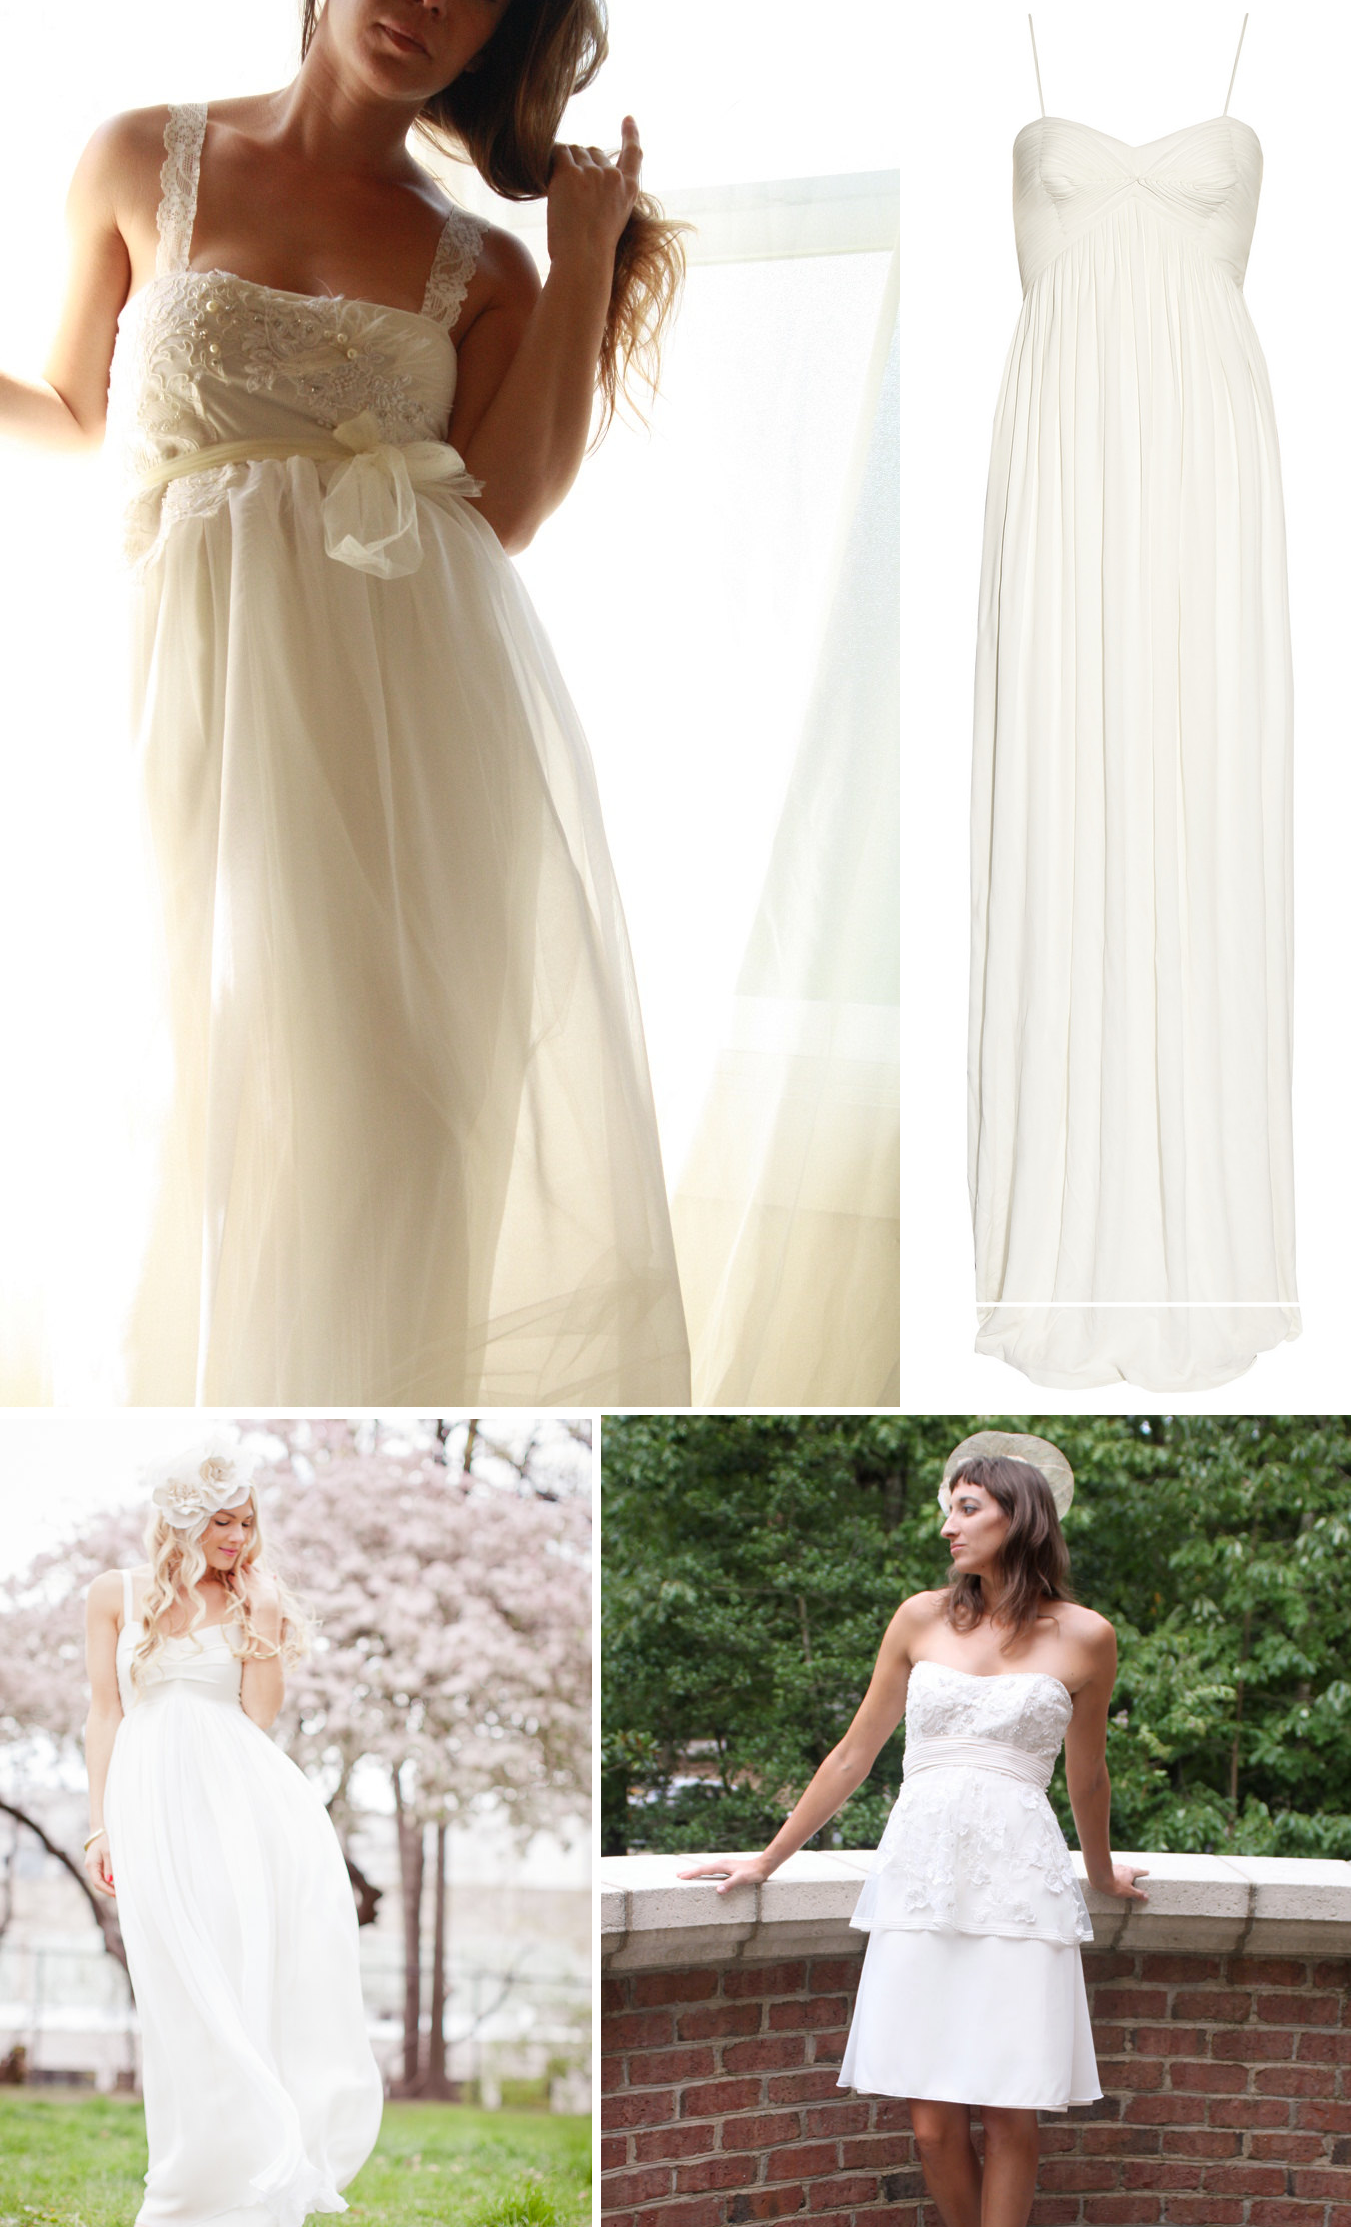 Empire waist wedding dress vintage inspired bridal style onewed com